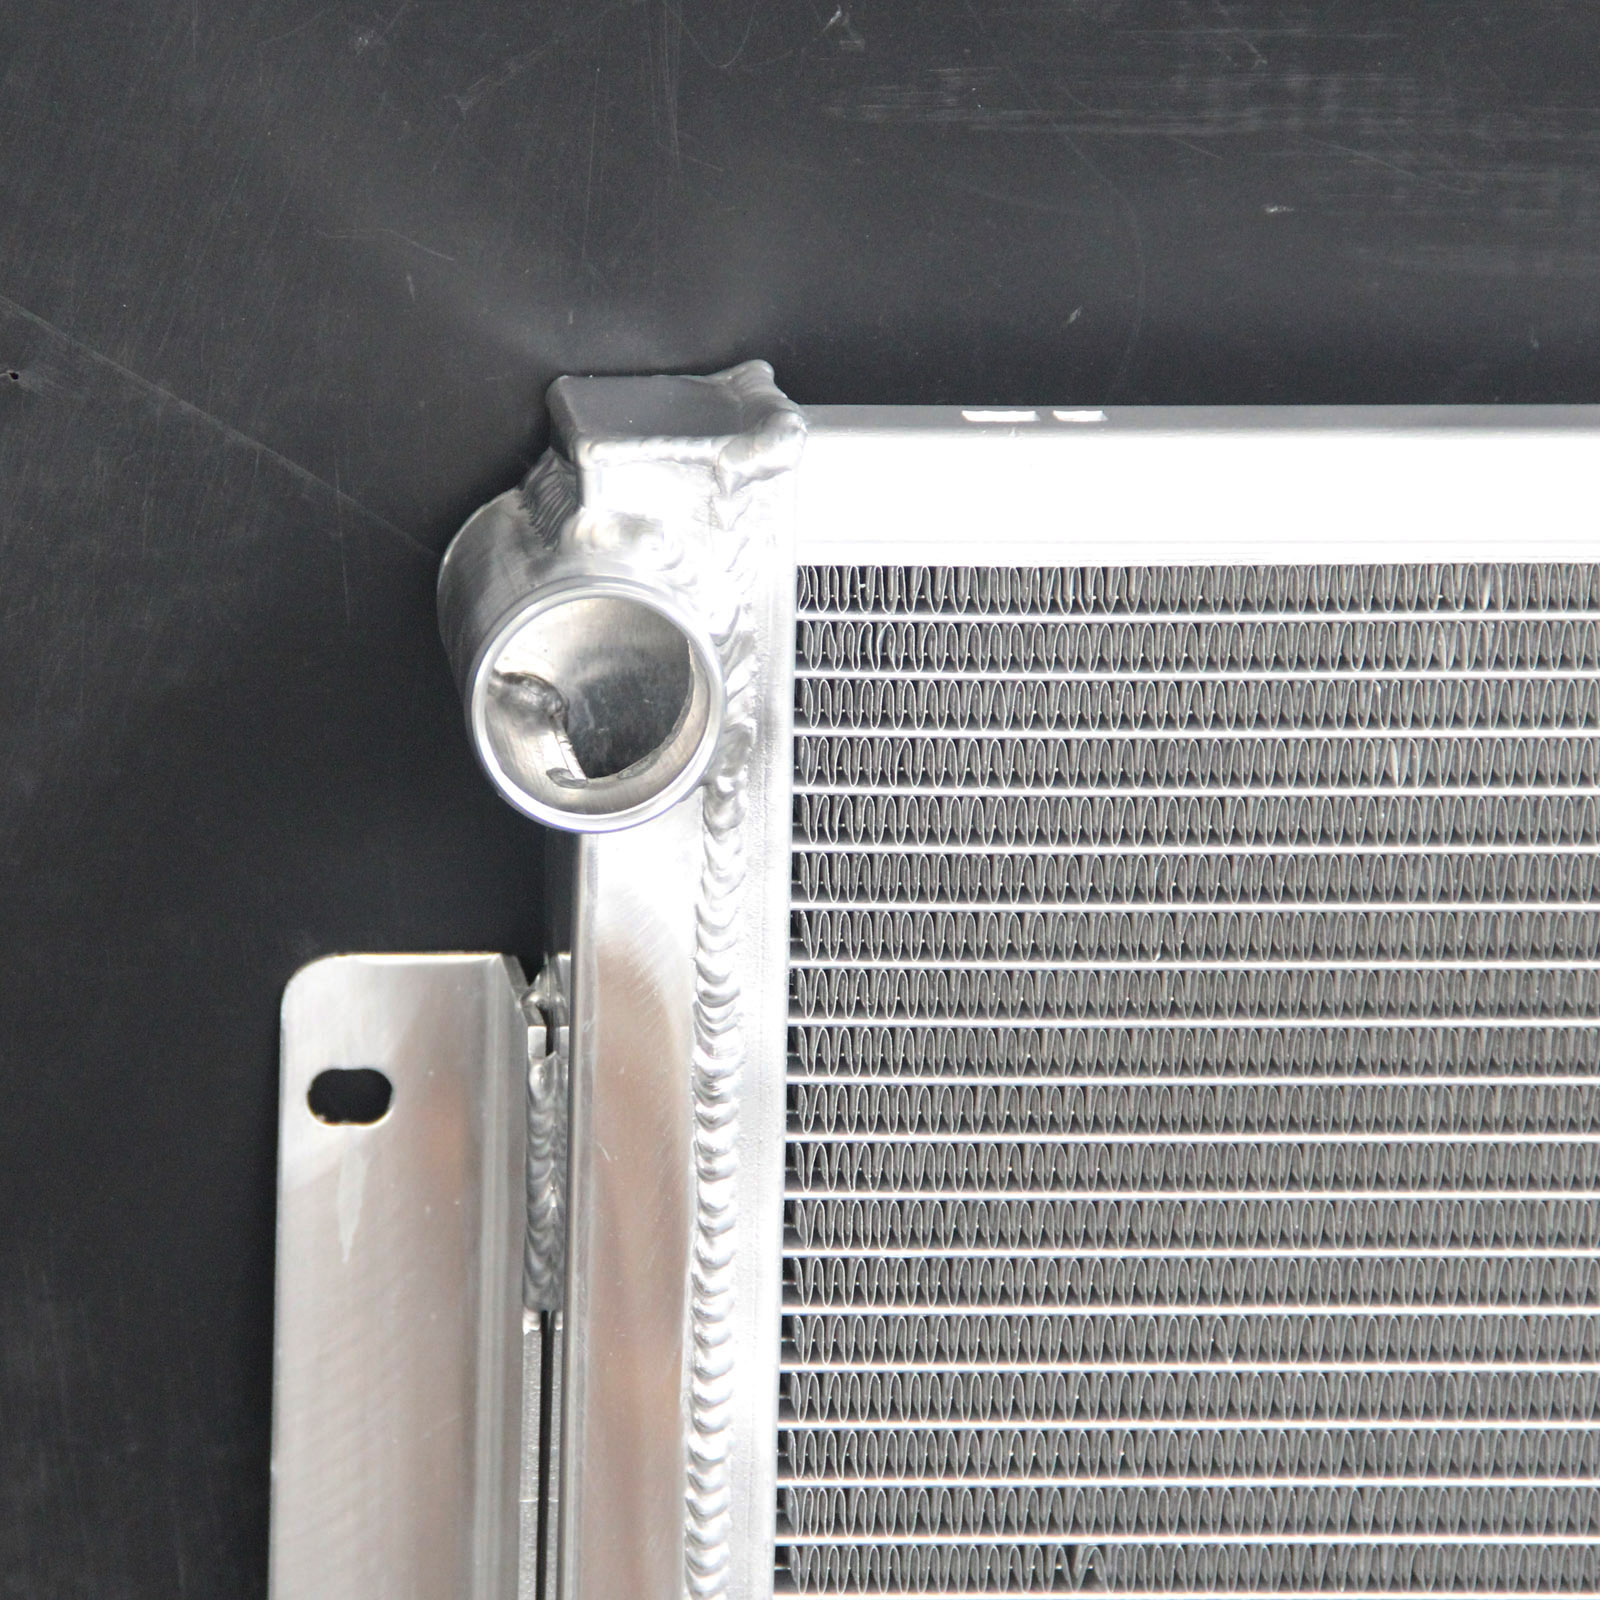 Aluminum radiator for CHEVROLET CAMARO 305ci 307ci 327ci Small Block V8 AT MT